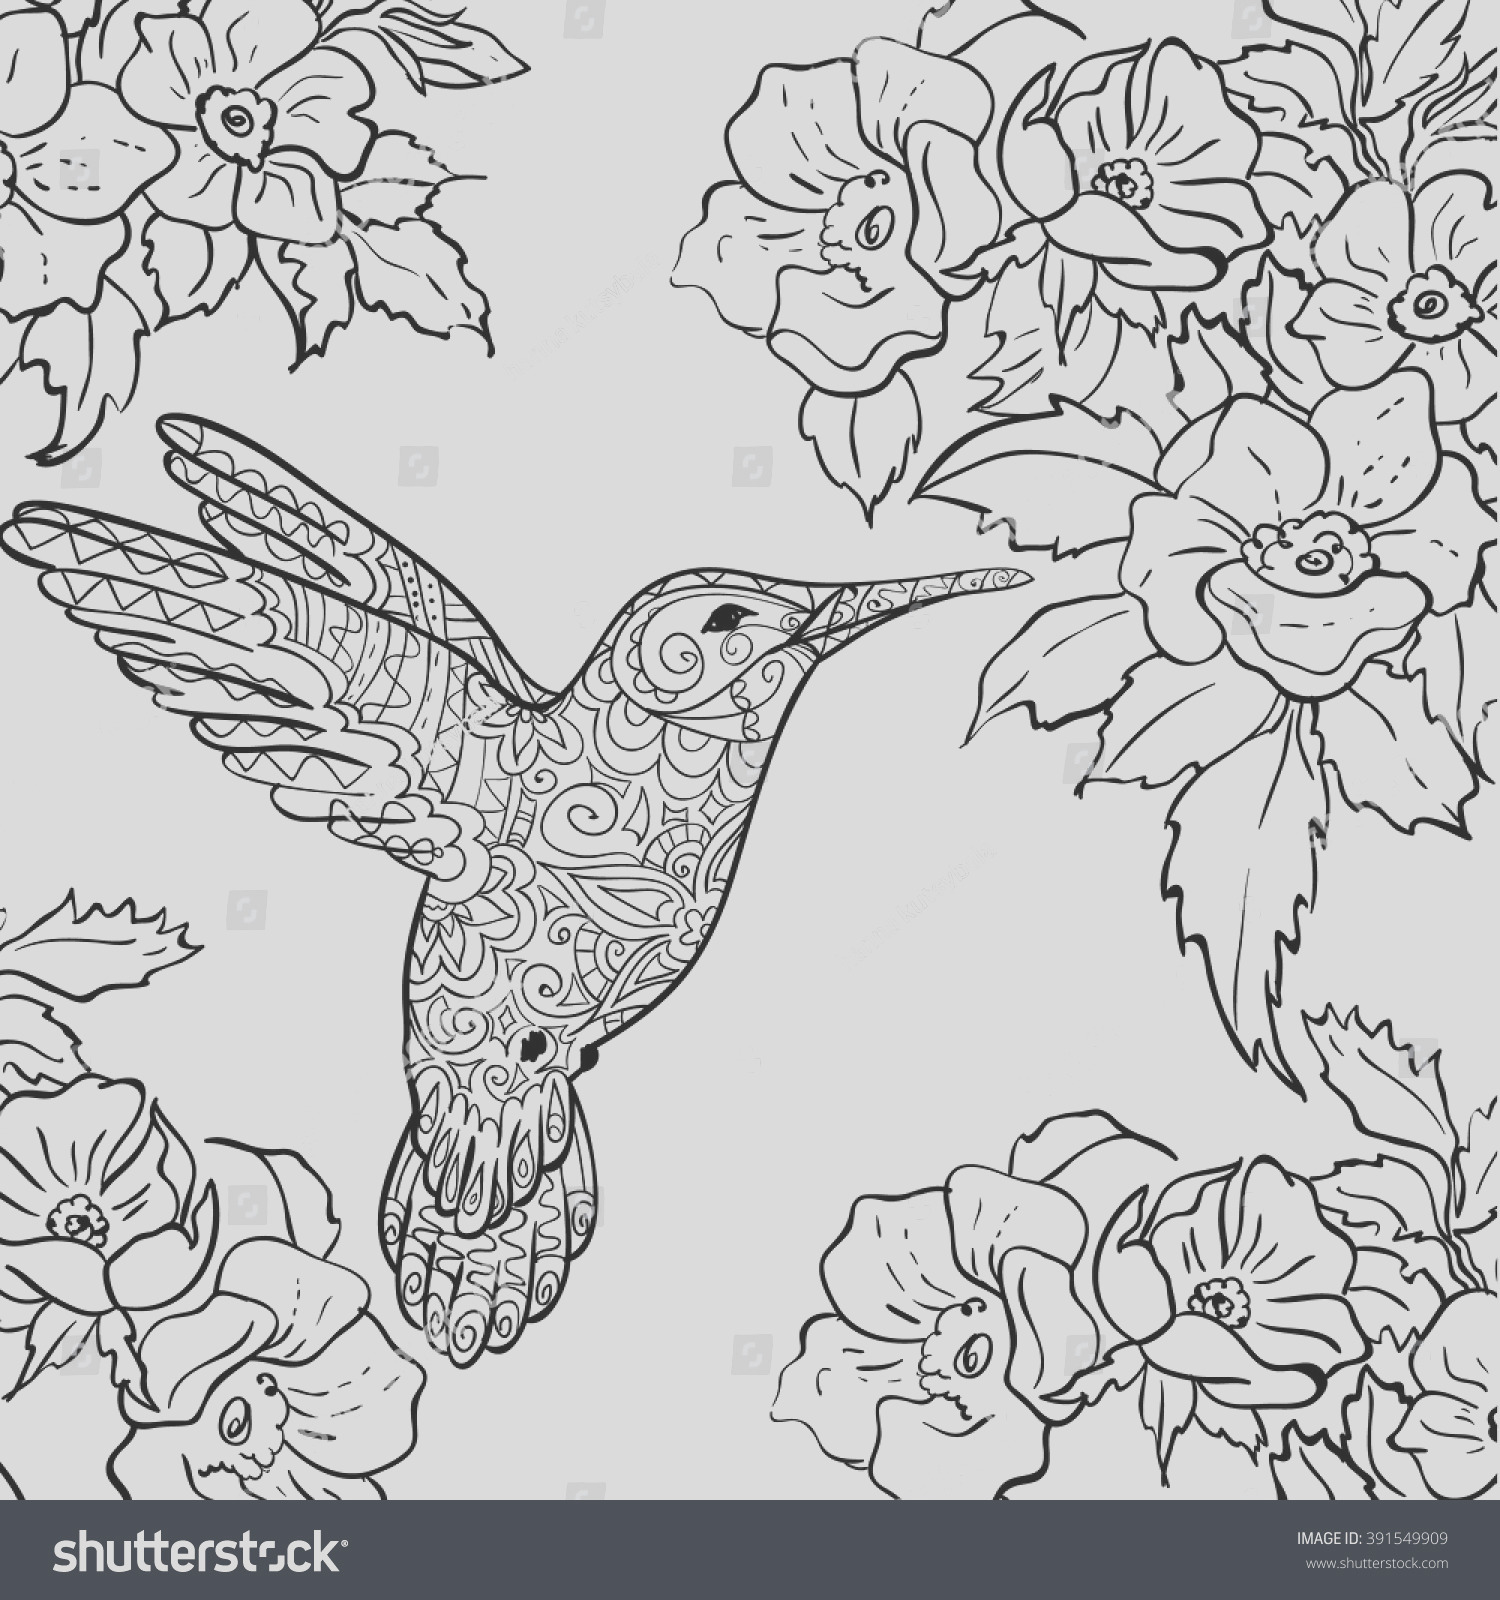 stock vector sketch hummingbird flying around flowers full of nectar sketch for adult antistress coloring page